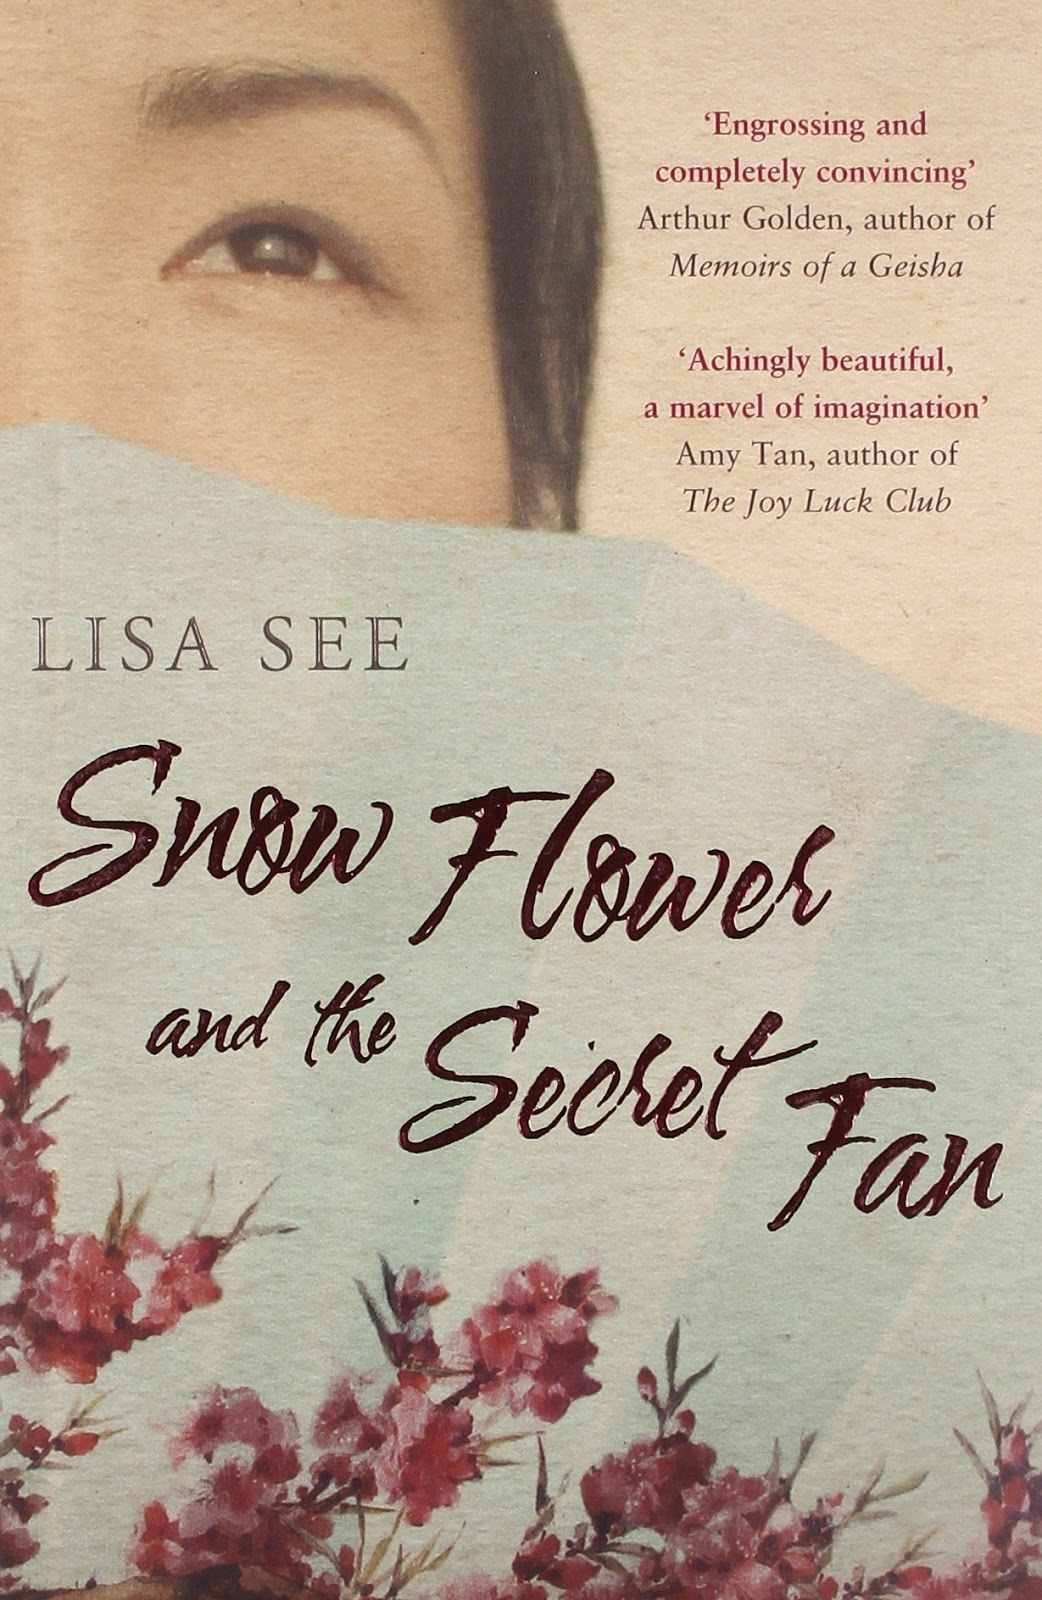 a comparison of lisa sees book snow flower and the secret fan Snow flower and the secret fan by lisa see by jessica wed, 01/02/2008 - 22:25  four-stars  with snow flower, see has written a novel that ranks with the best fiction of amy tan and maxine hong kingston,  snow flower and the secret fan is a triumph on every level, a beautiful, heartbreaking story.